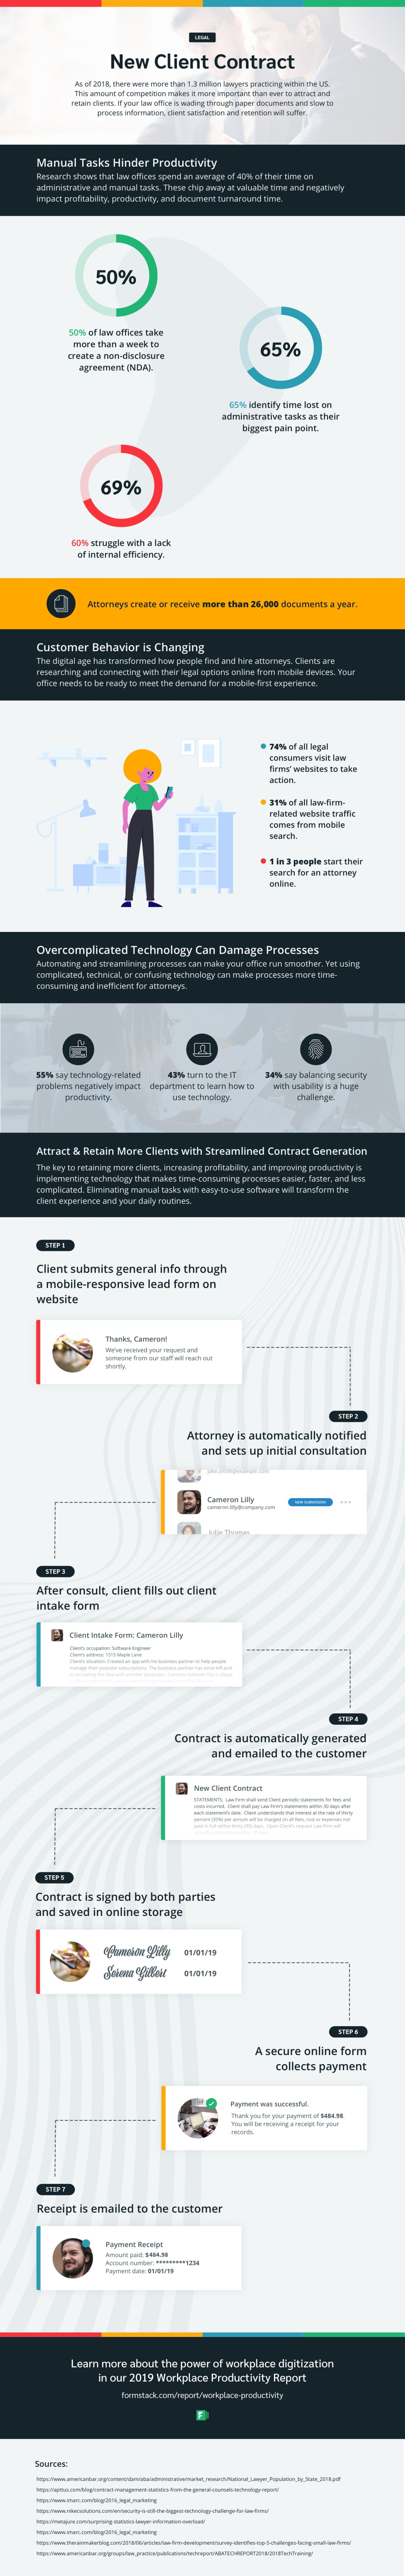 New client contract generation infographic